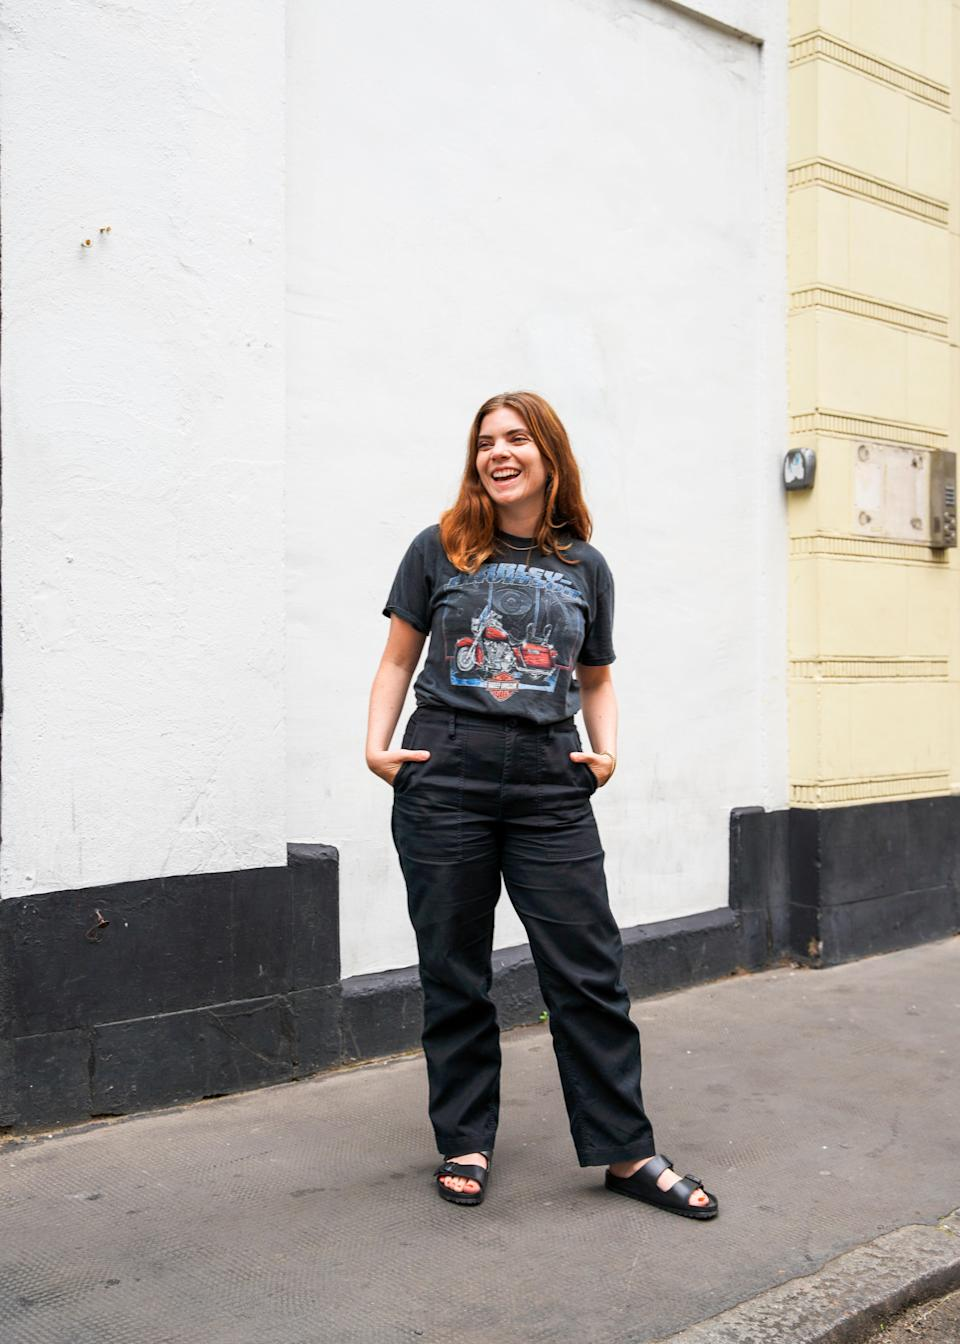 <strong>Vicky Spratt, Features Editor</strong>